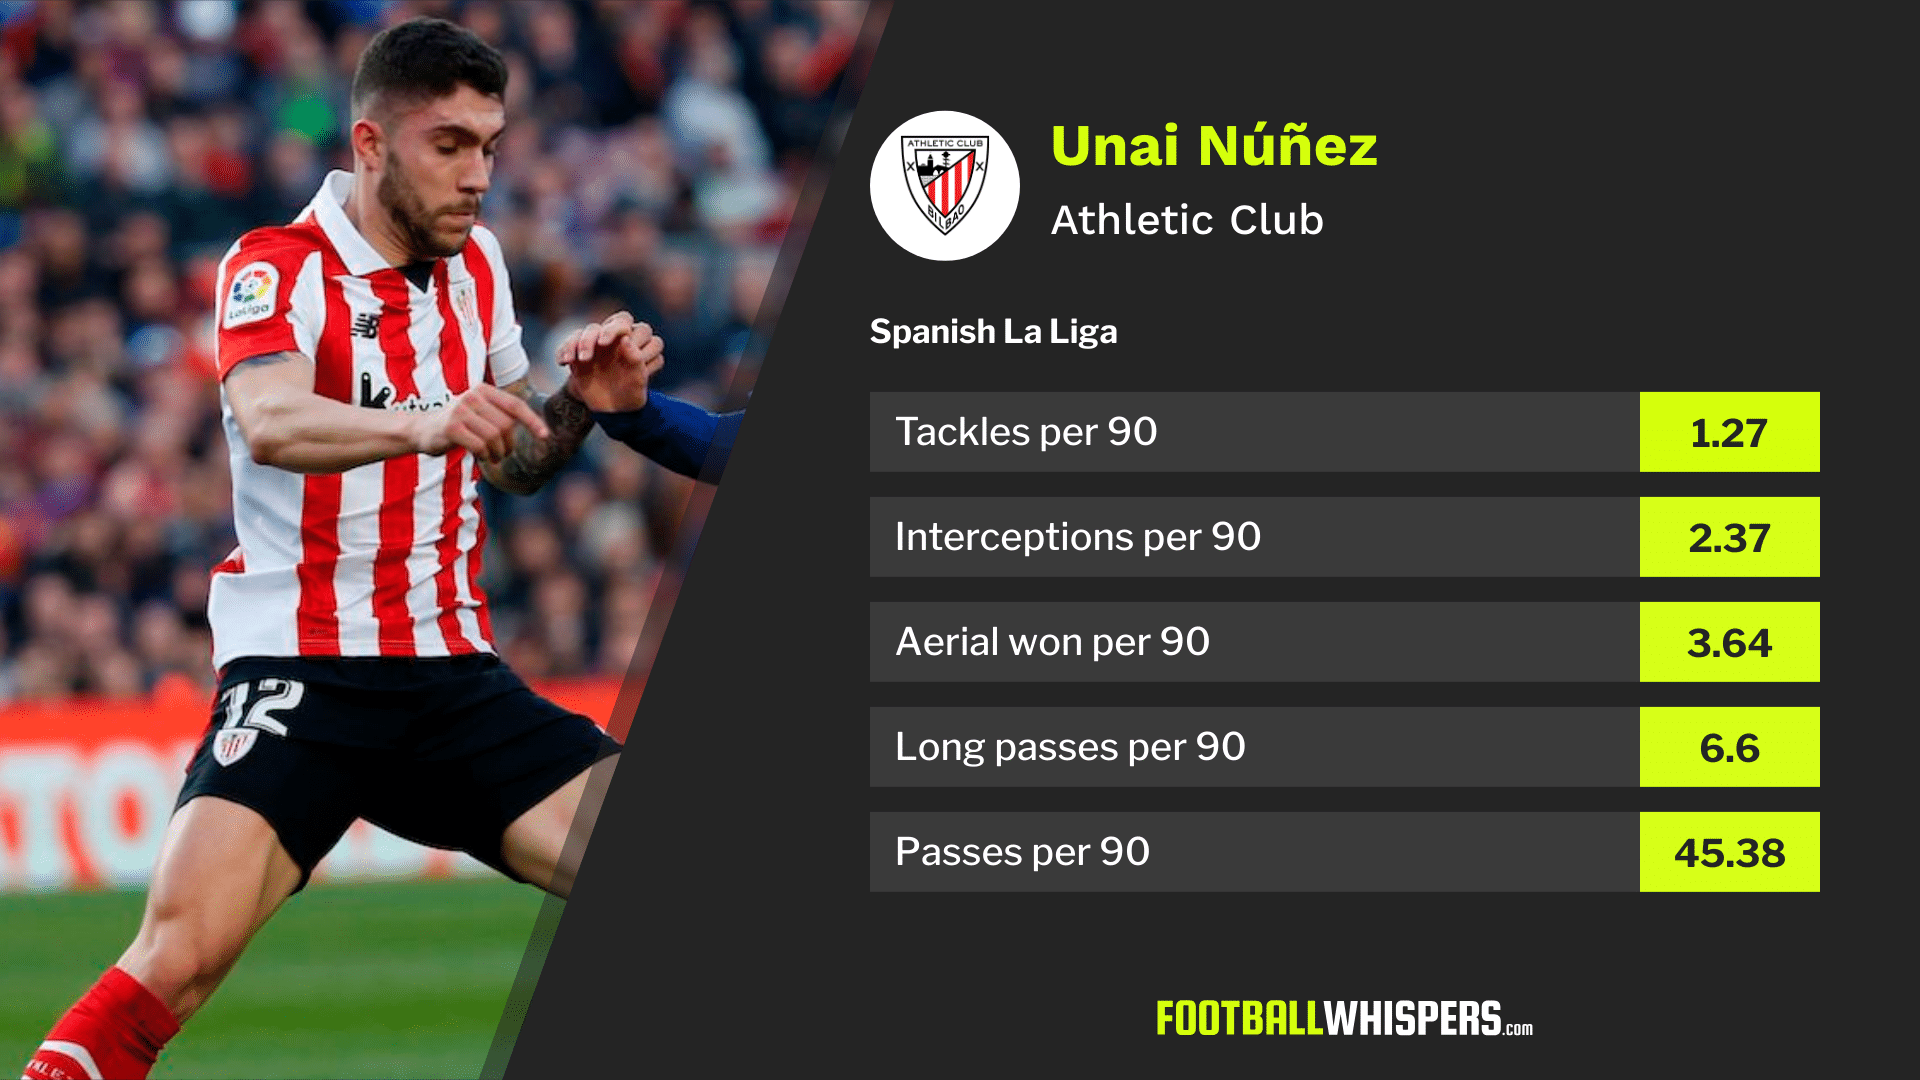 Athletic Club defender Unai Núñez should be of interest to Arsenal